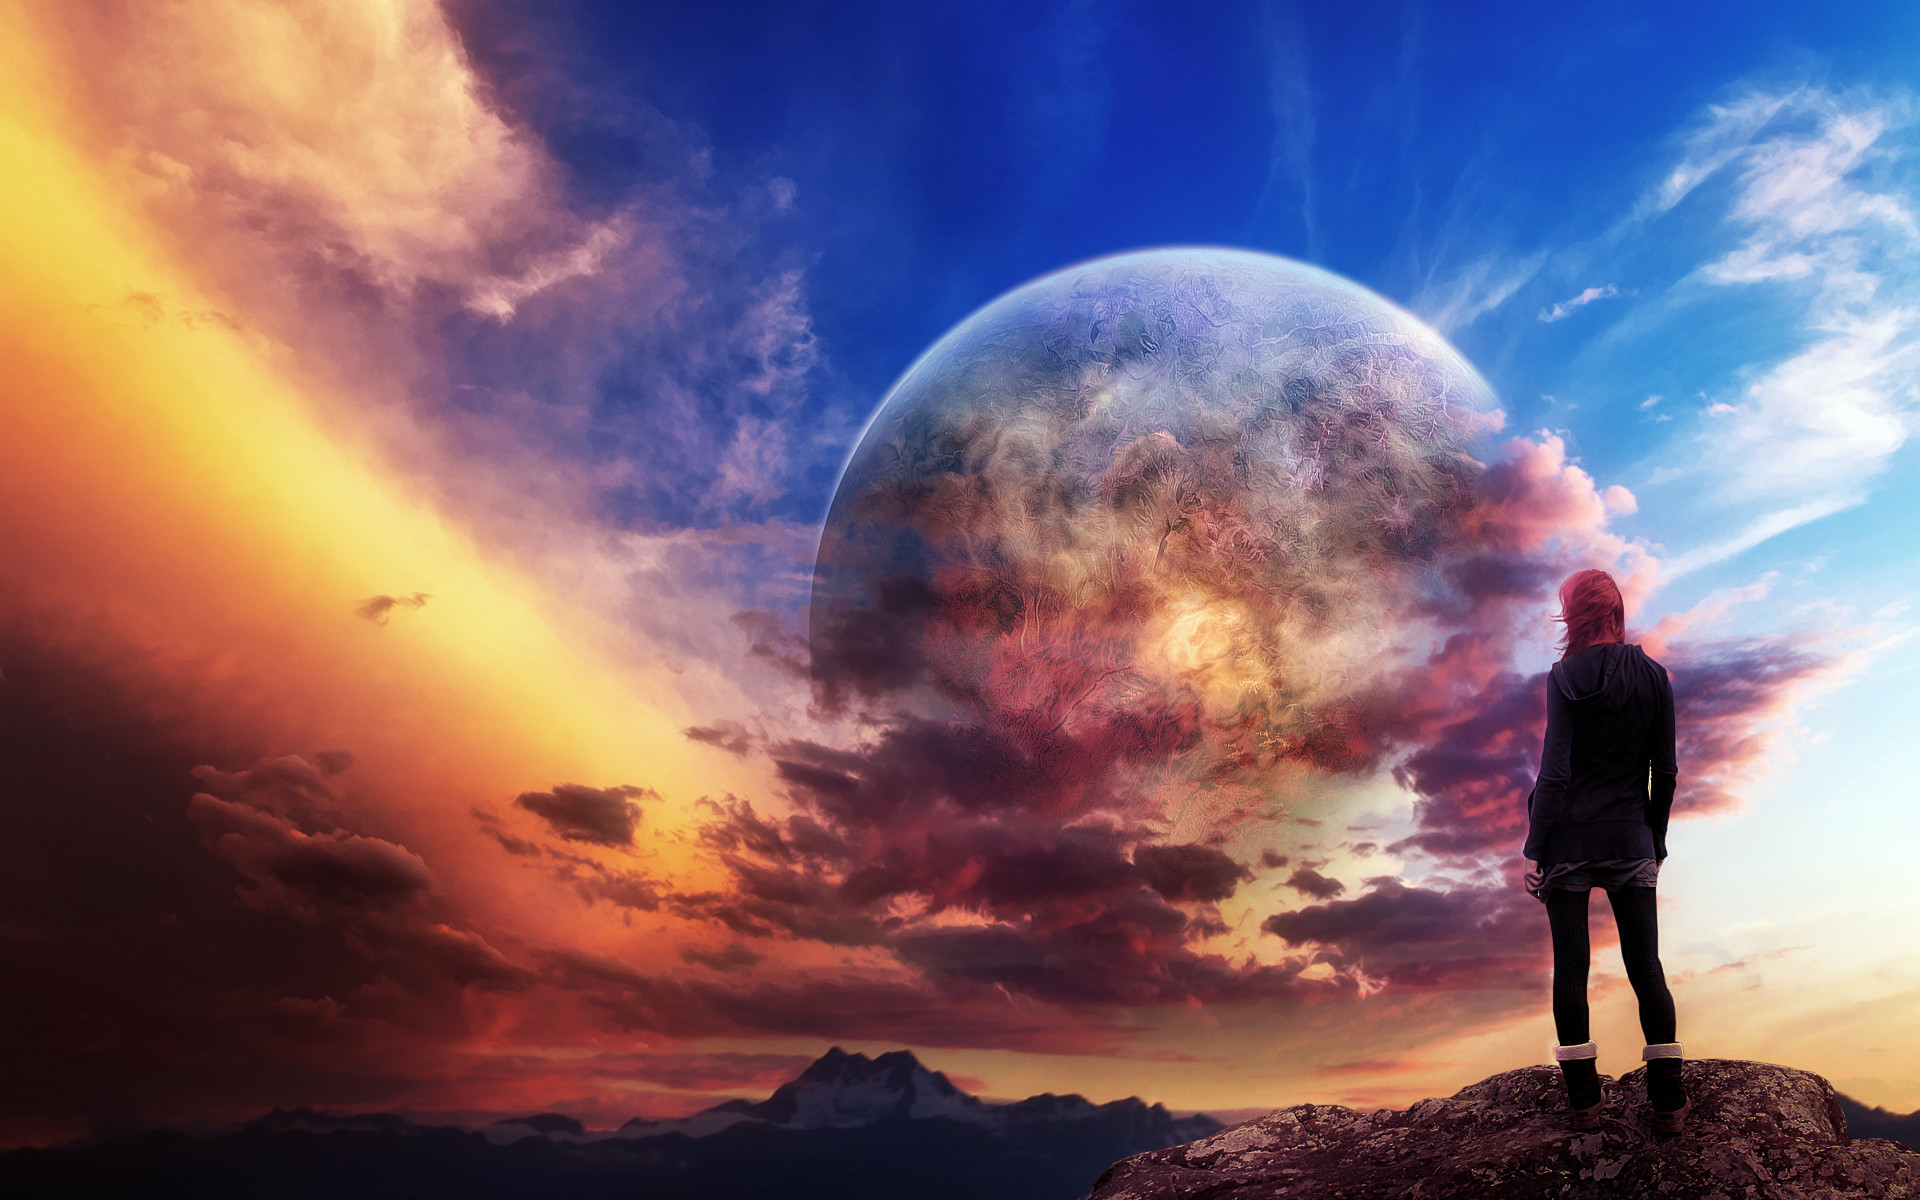 1920x1200 Landscapes Planets Science Fiction Wallpaper At 3d Wallpapers